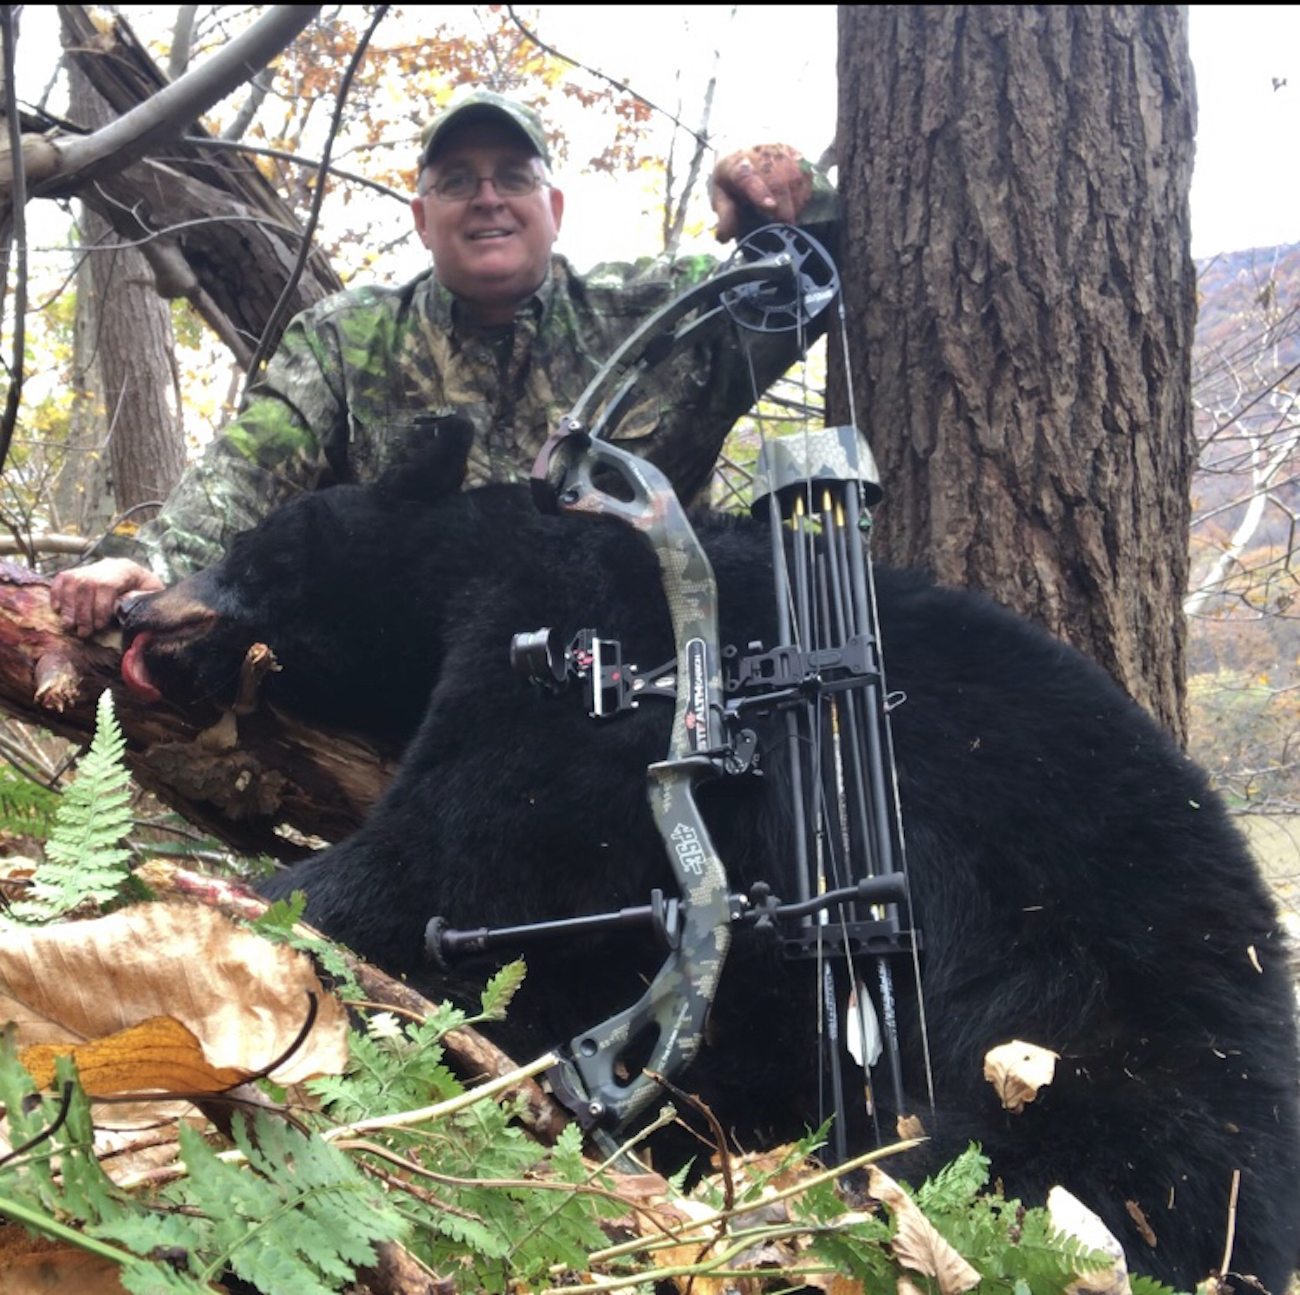 Wasp Drone takes down two more black bears